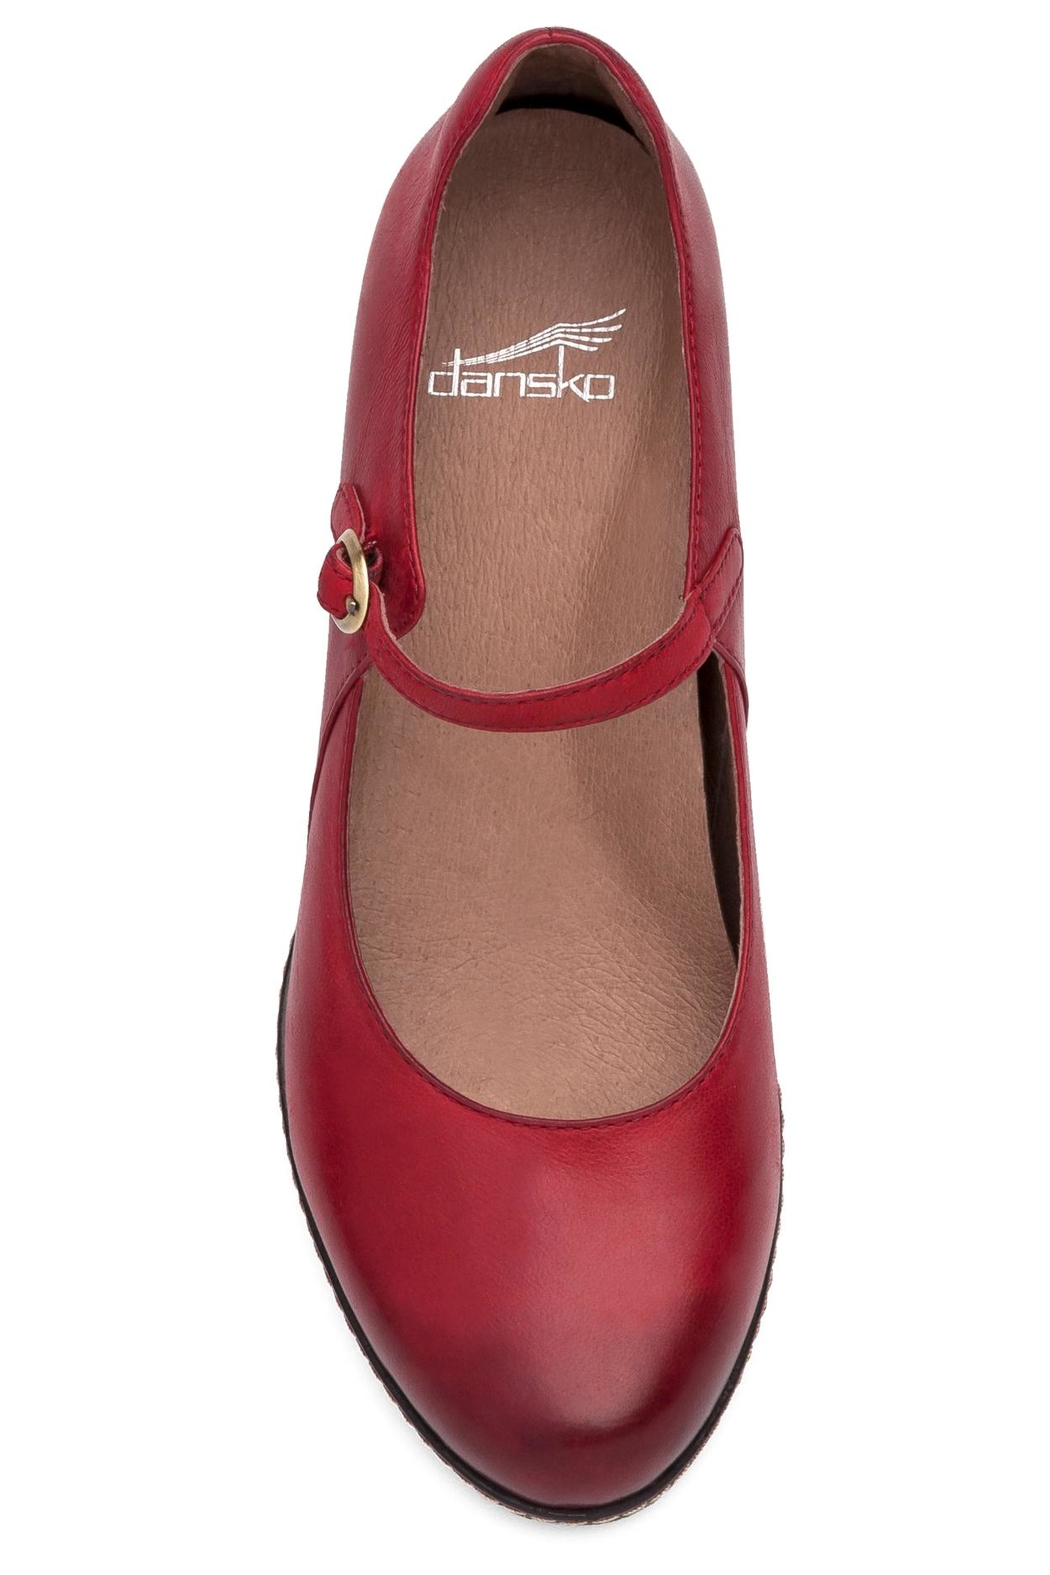 Dansko Loralie Maryjane Shoes - Side Cropped Image